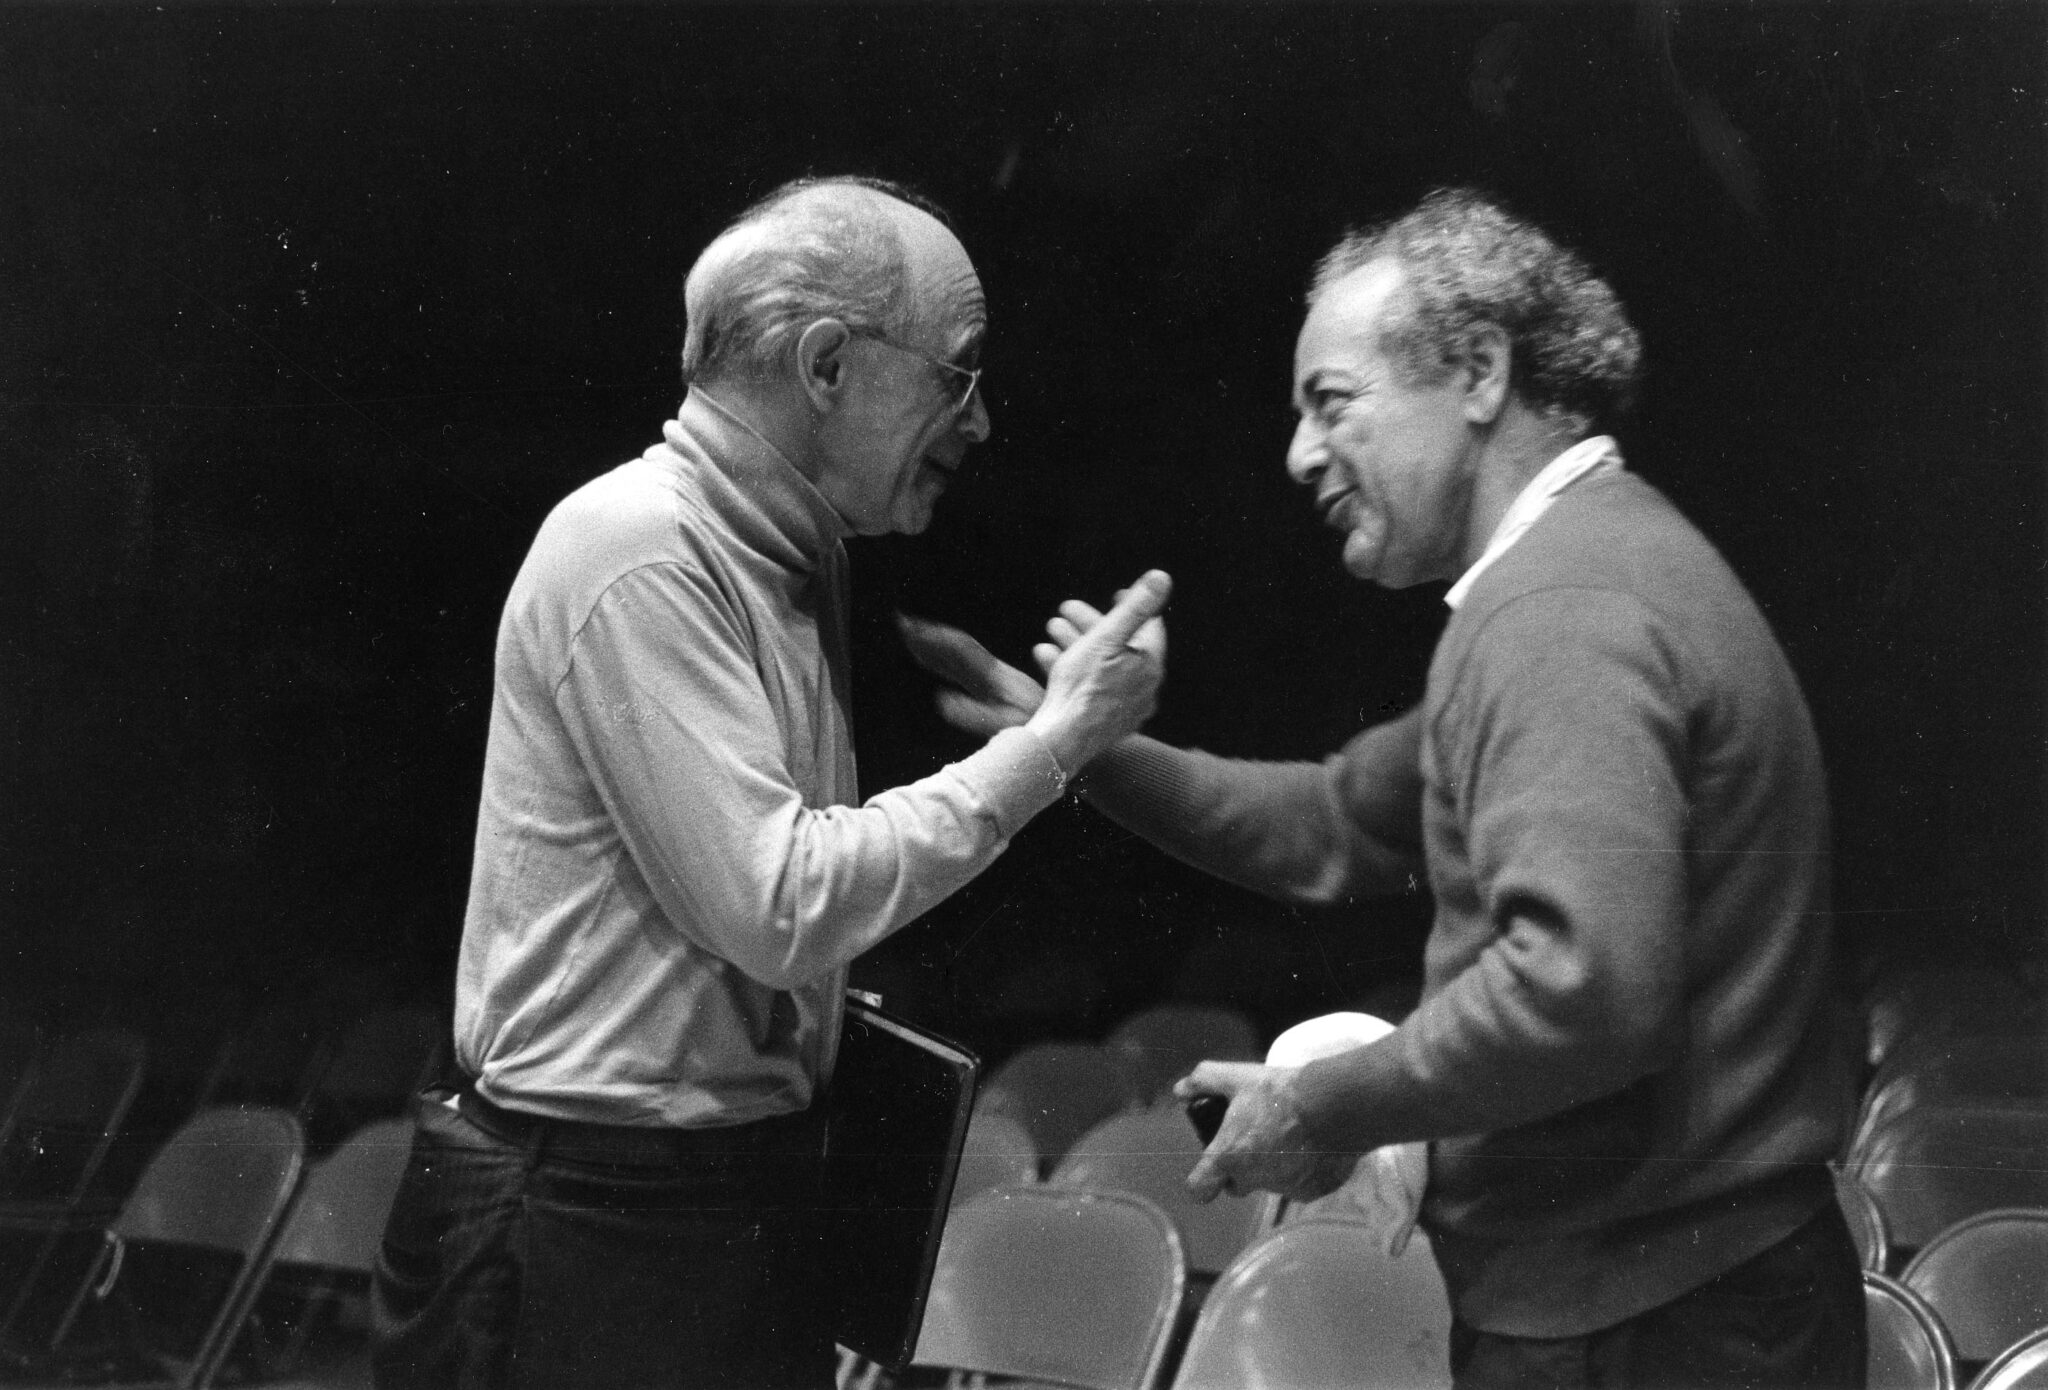 "Rudolf Serkin and Alexander Schneider | ""For me, my purpose is to get young people to learn how to make music. When you make music, it has to come from your heart, from your soul, or it has no meaning. It's an extraordinary experience when I see the results. They produce a sound a professional orchestra couldn't:  a love of music."" -Sasha Schneider. Photo by Woodrow Leung."